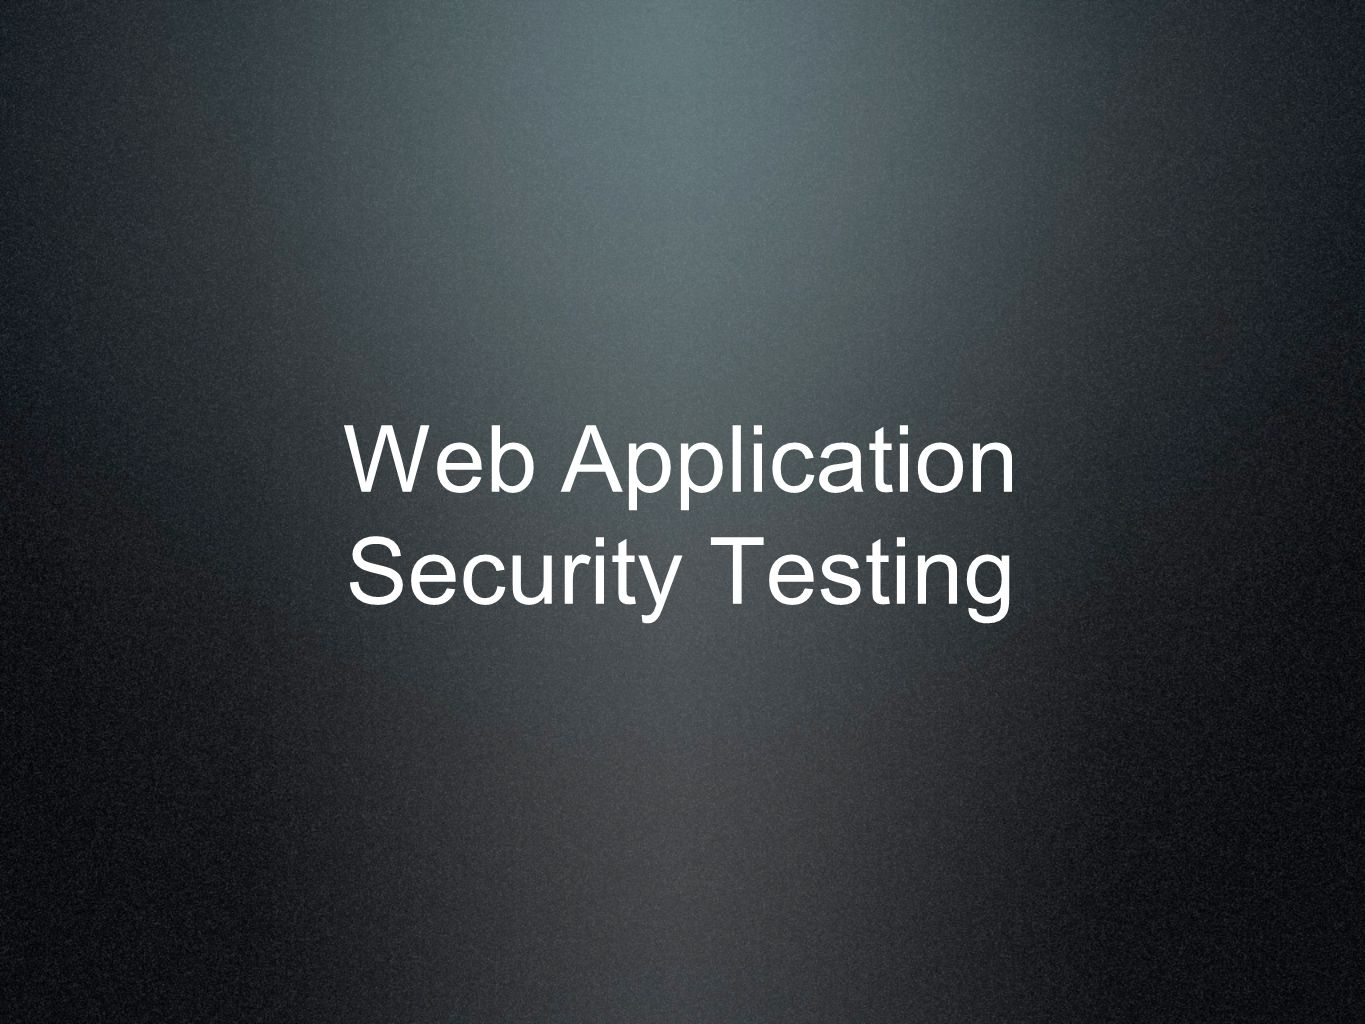 Web Application Security Testing